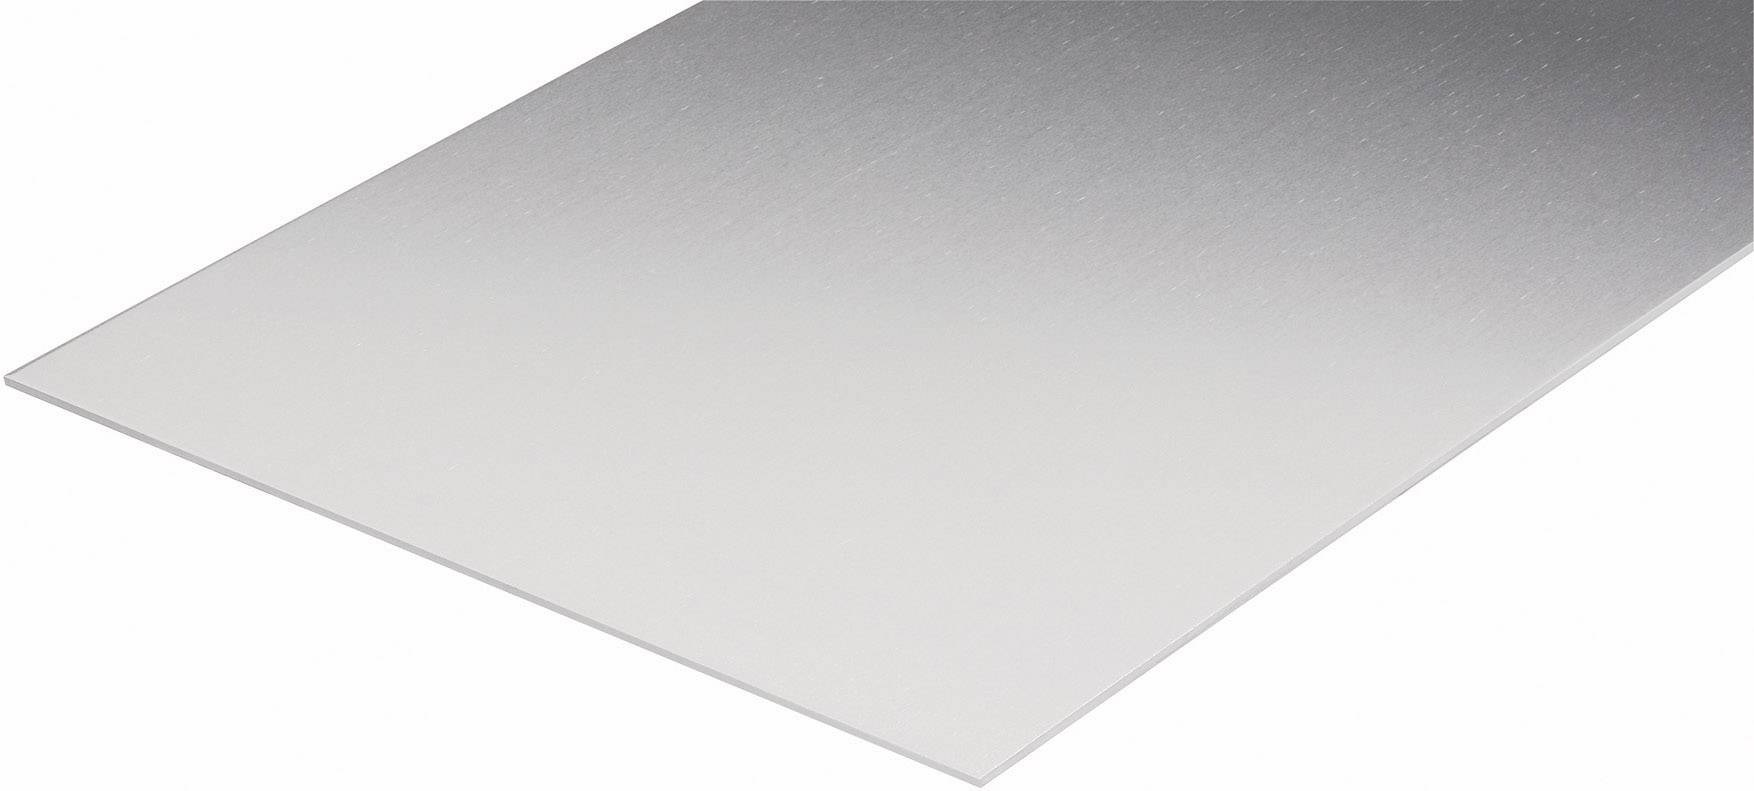 Alu Plaat Plaat Glad Aluminium 100x50x1 0mm